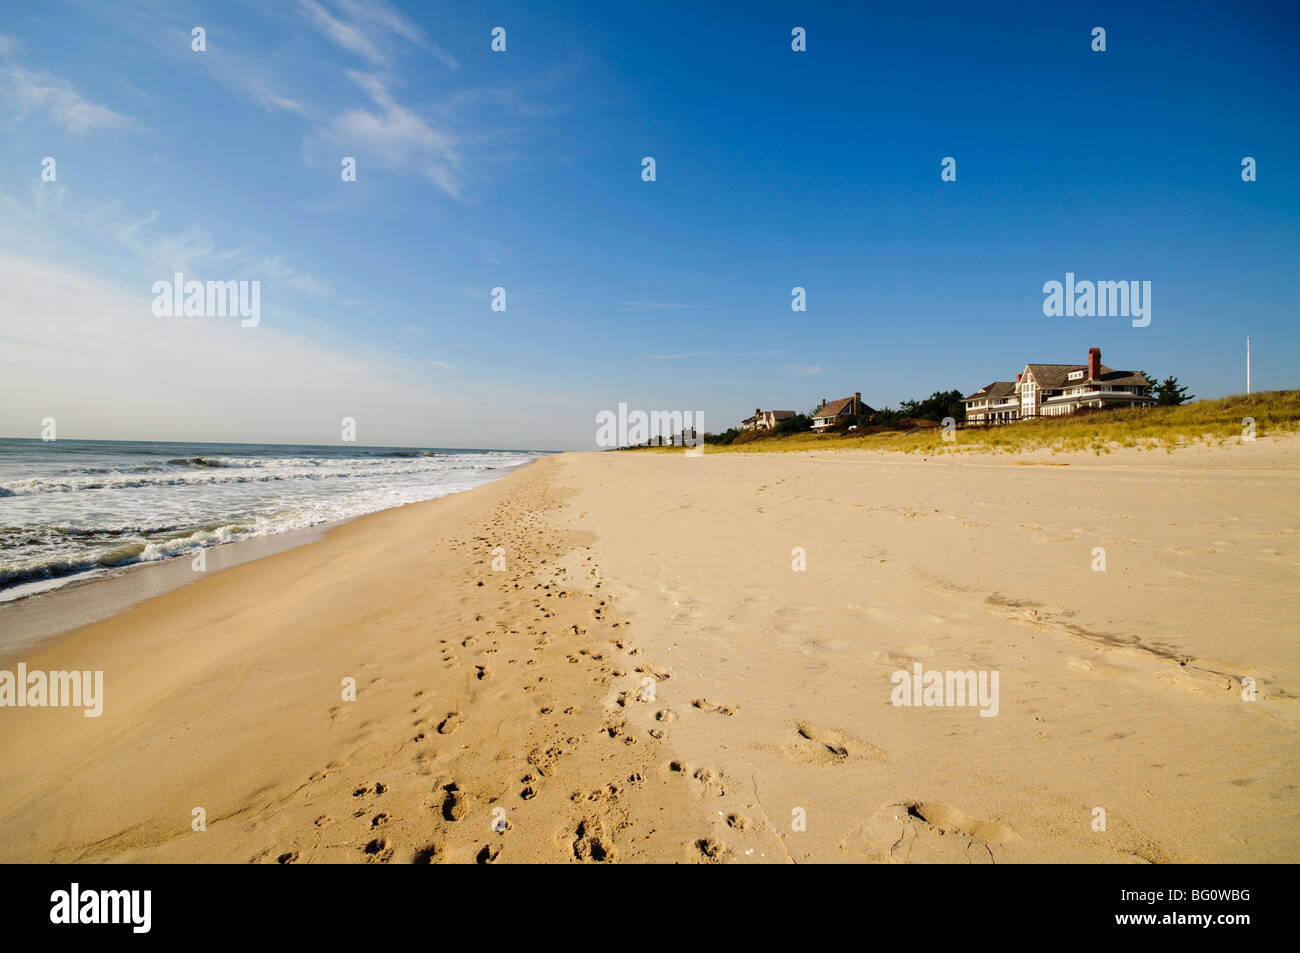 Main Beach, East Hampton, the Hamptons, Long Island, New York State, United States of America, North America - Stock Image